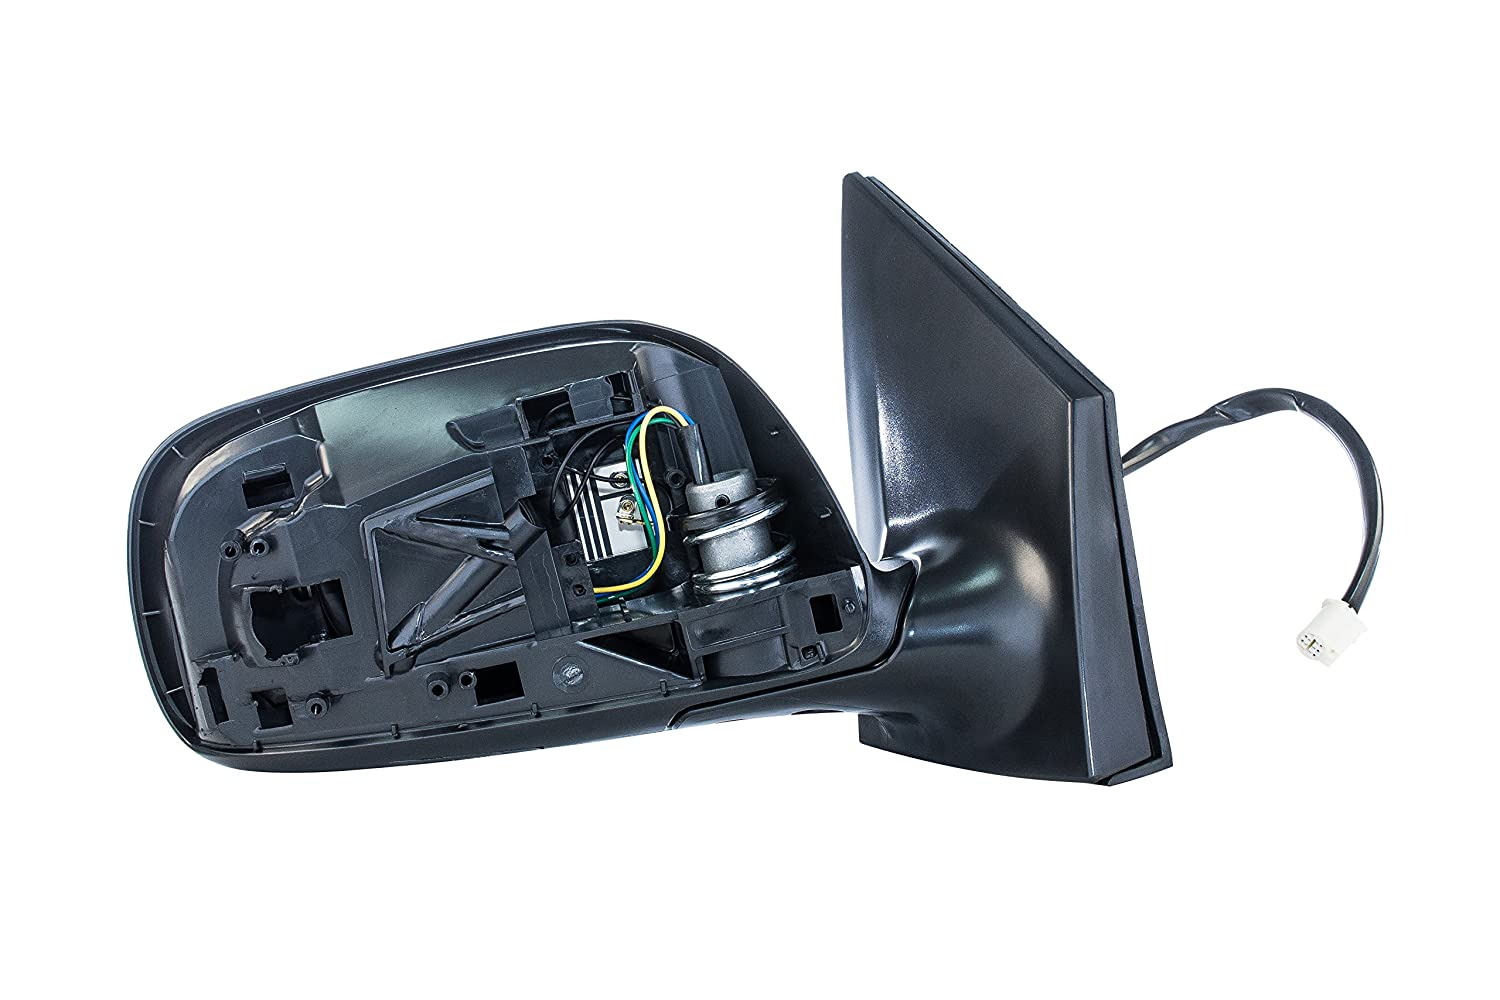 2009 2010 2011 2012 2013 TO1321247 Part Link # Dependable Direct Right Passenger Side Black Heated Manual Folding Door Mirror for Toyota Corolla